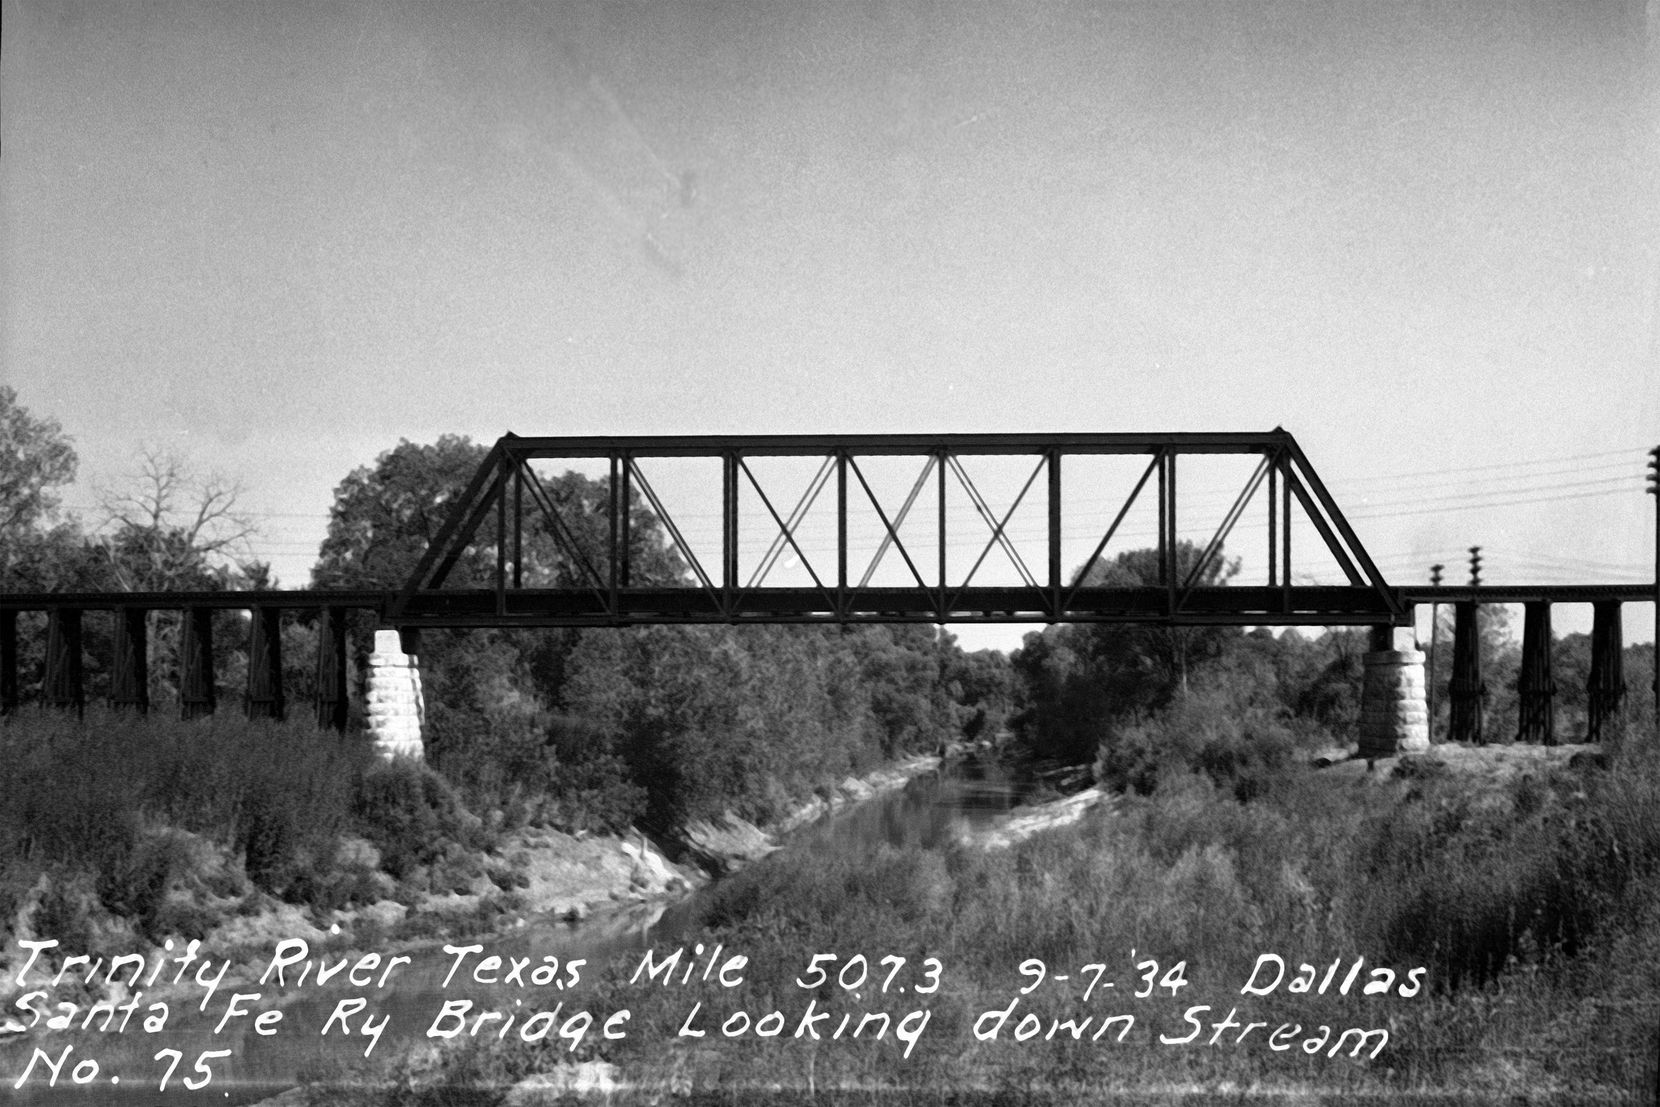 How the trestle bridge looked 86 years ago as it spanned the Trinity River south of downtown Dallas